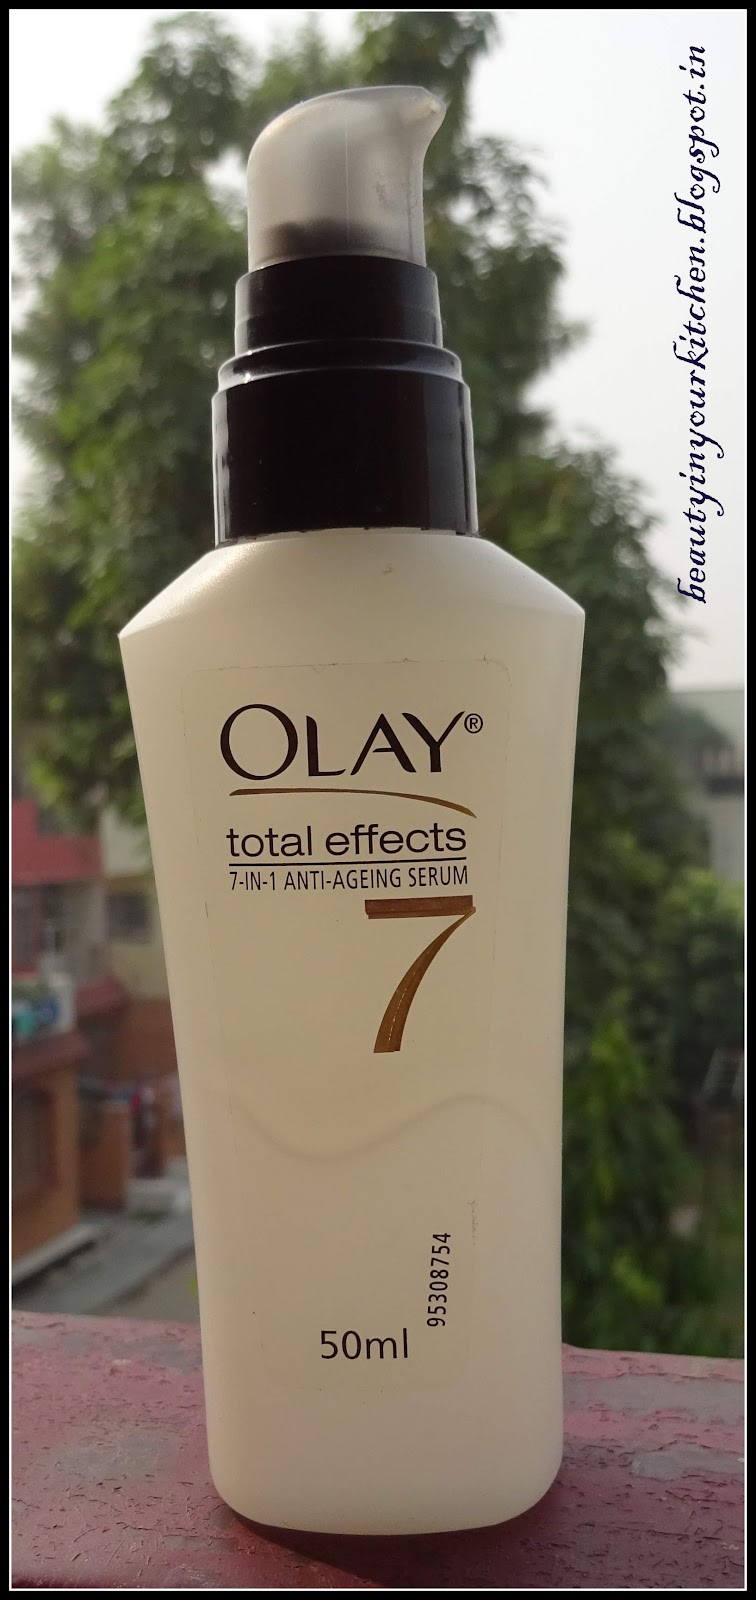 Home And Me November 2015 Olay Total Effects 7in1 Anti Ageing Serum 50ml 7 In 1 Was Quite Disappointing It Really Did Not Do Anything For So My Search A Good Is Still On